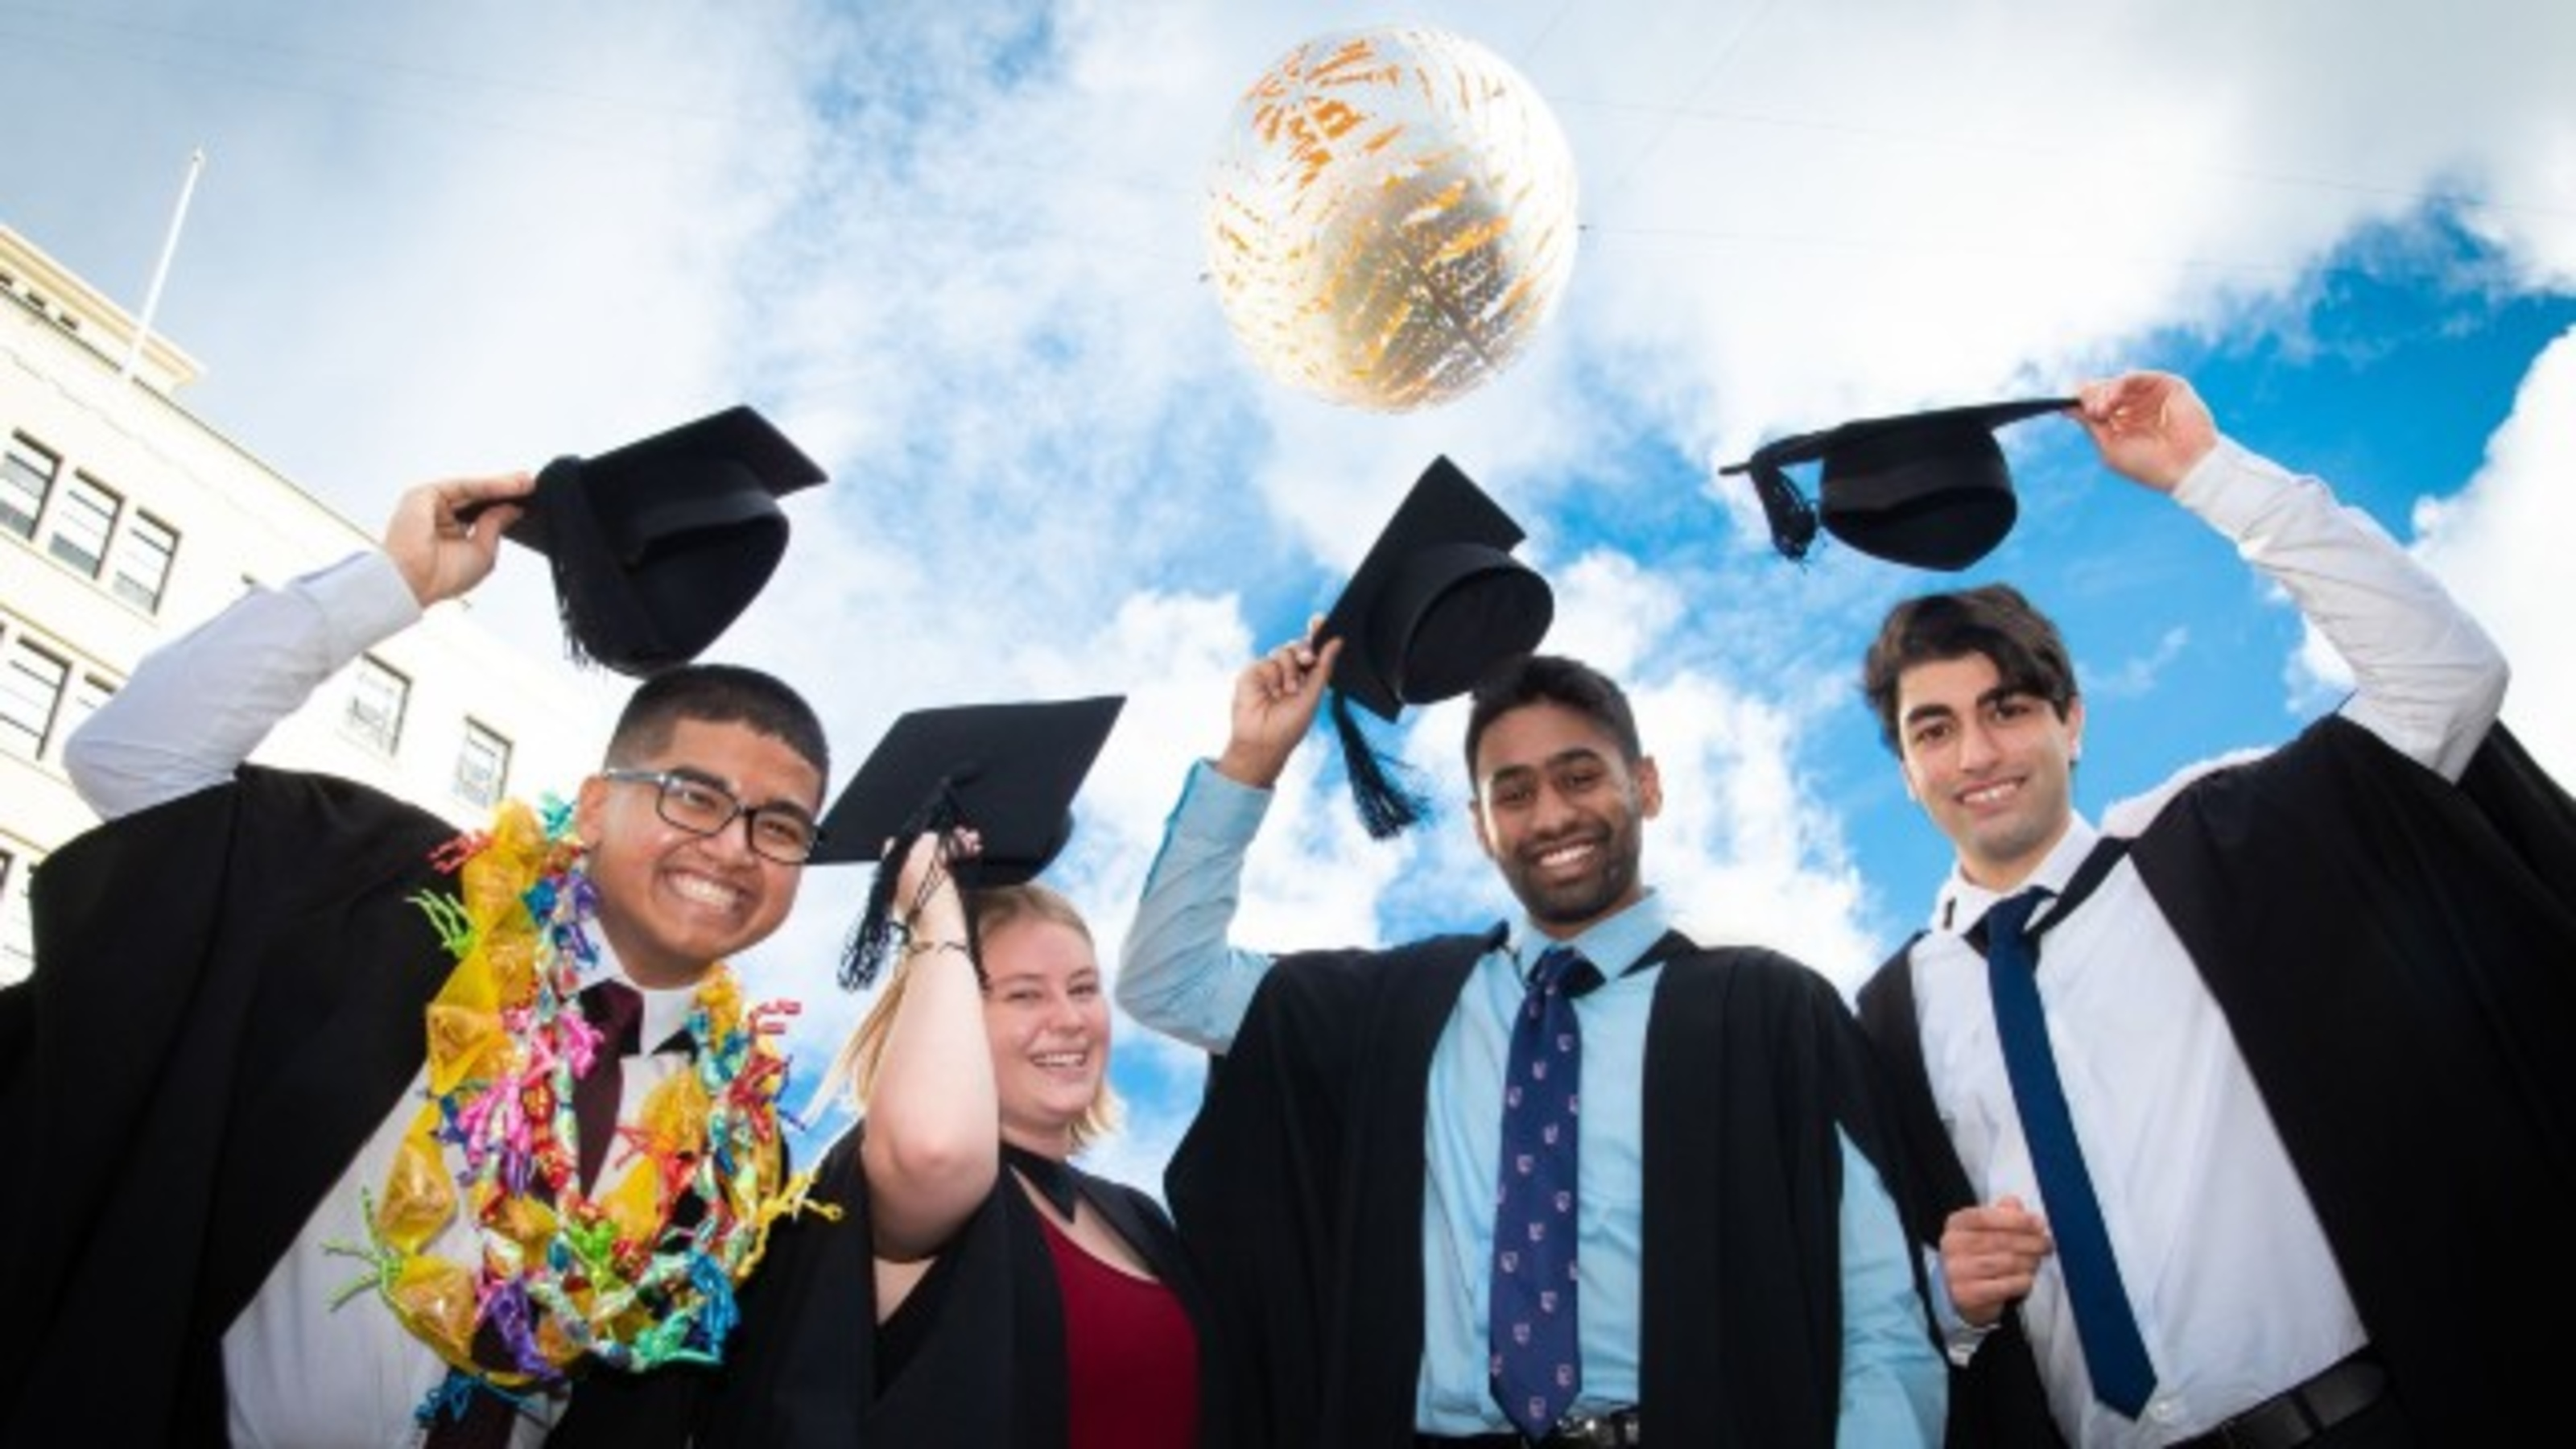 Three students holding their hats up at graduation.